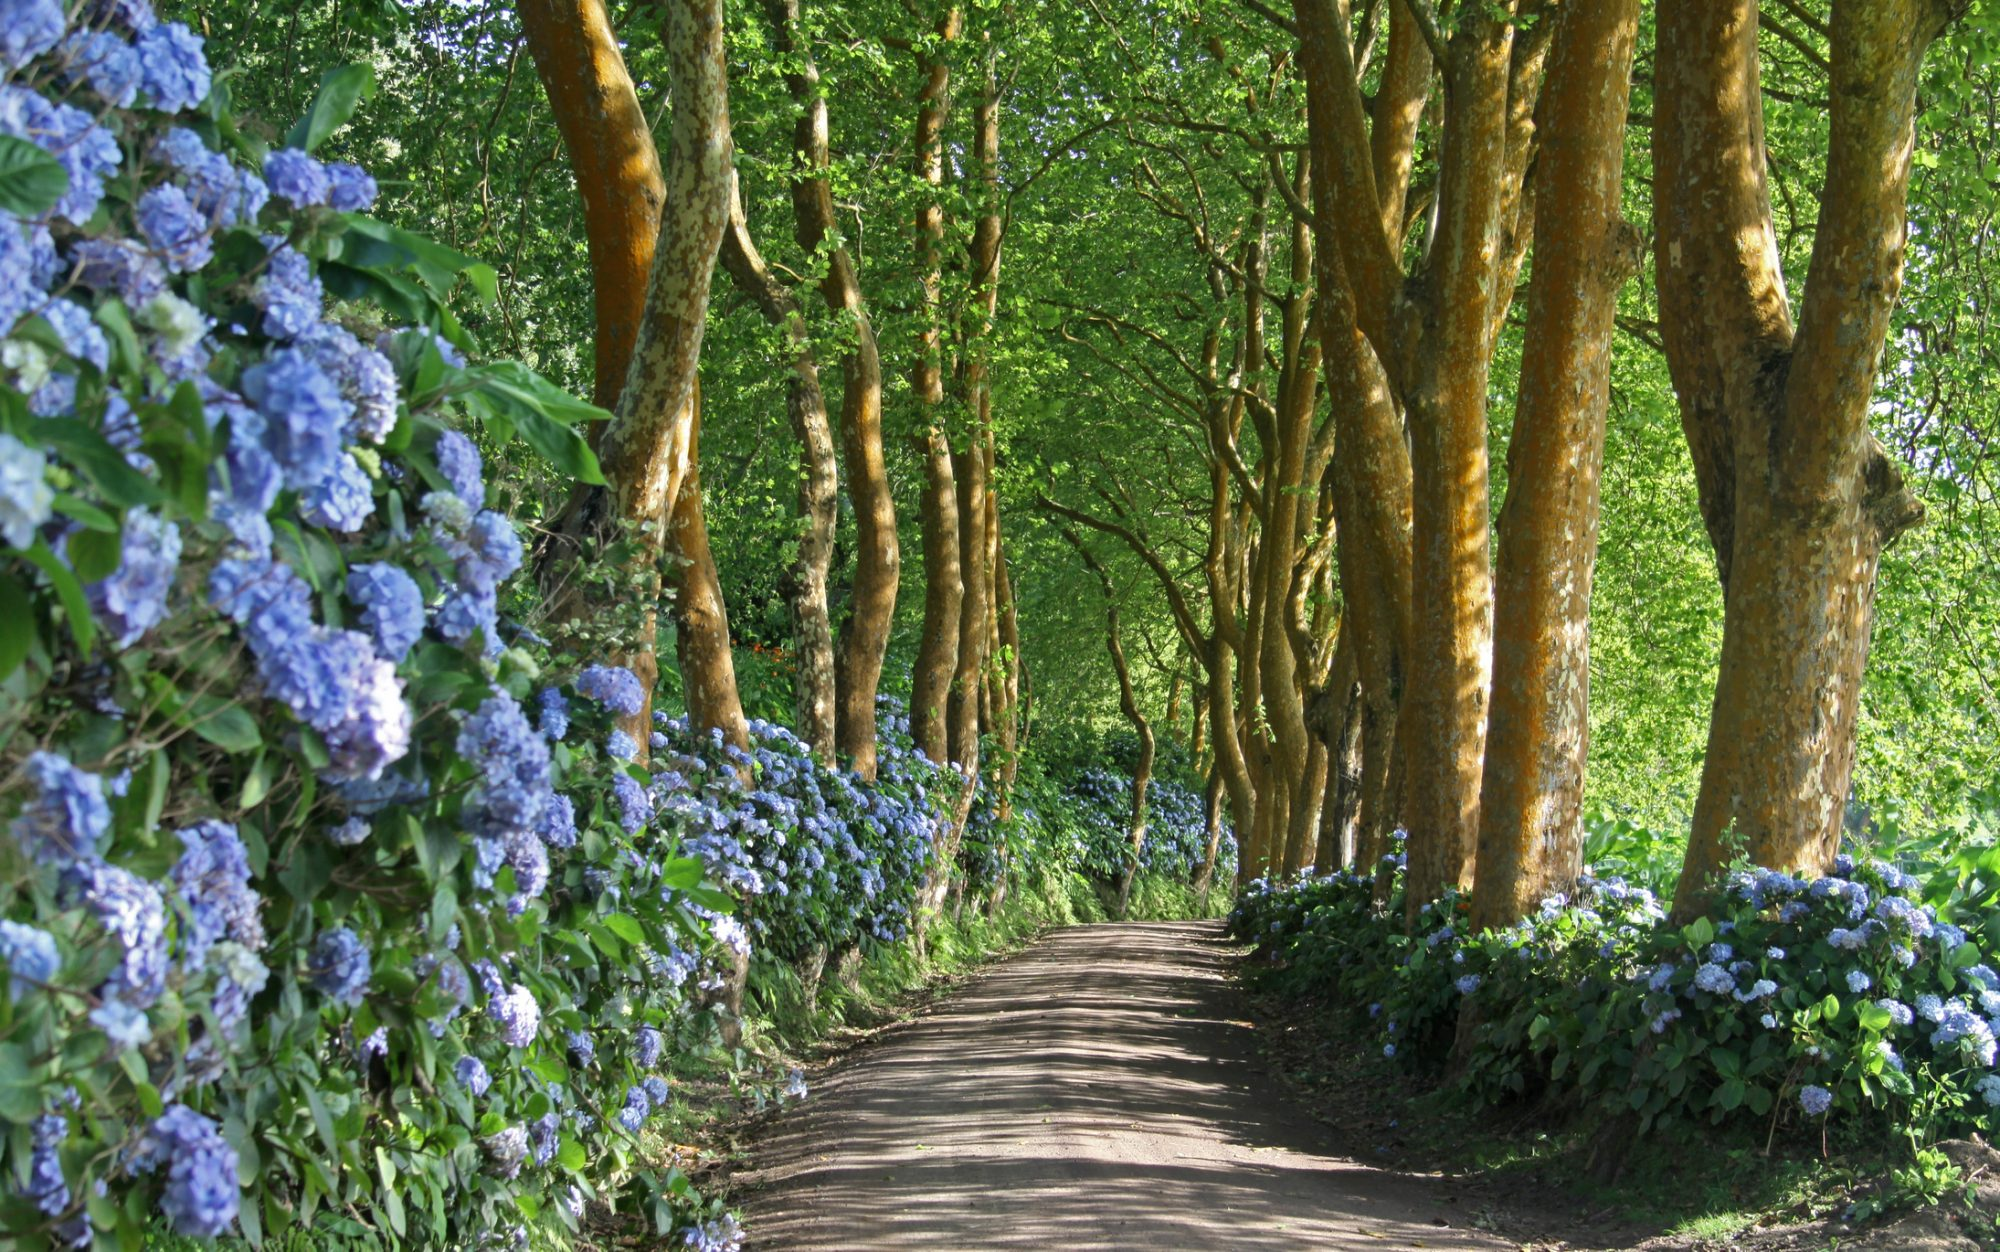 Dirt road with hydrangea shrubs and archway of trees